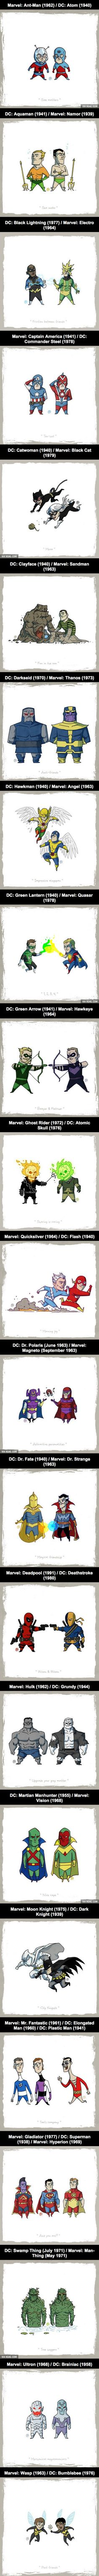 Marvel Vs DC: Equivalent Characters